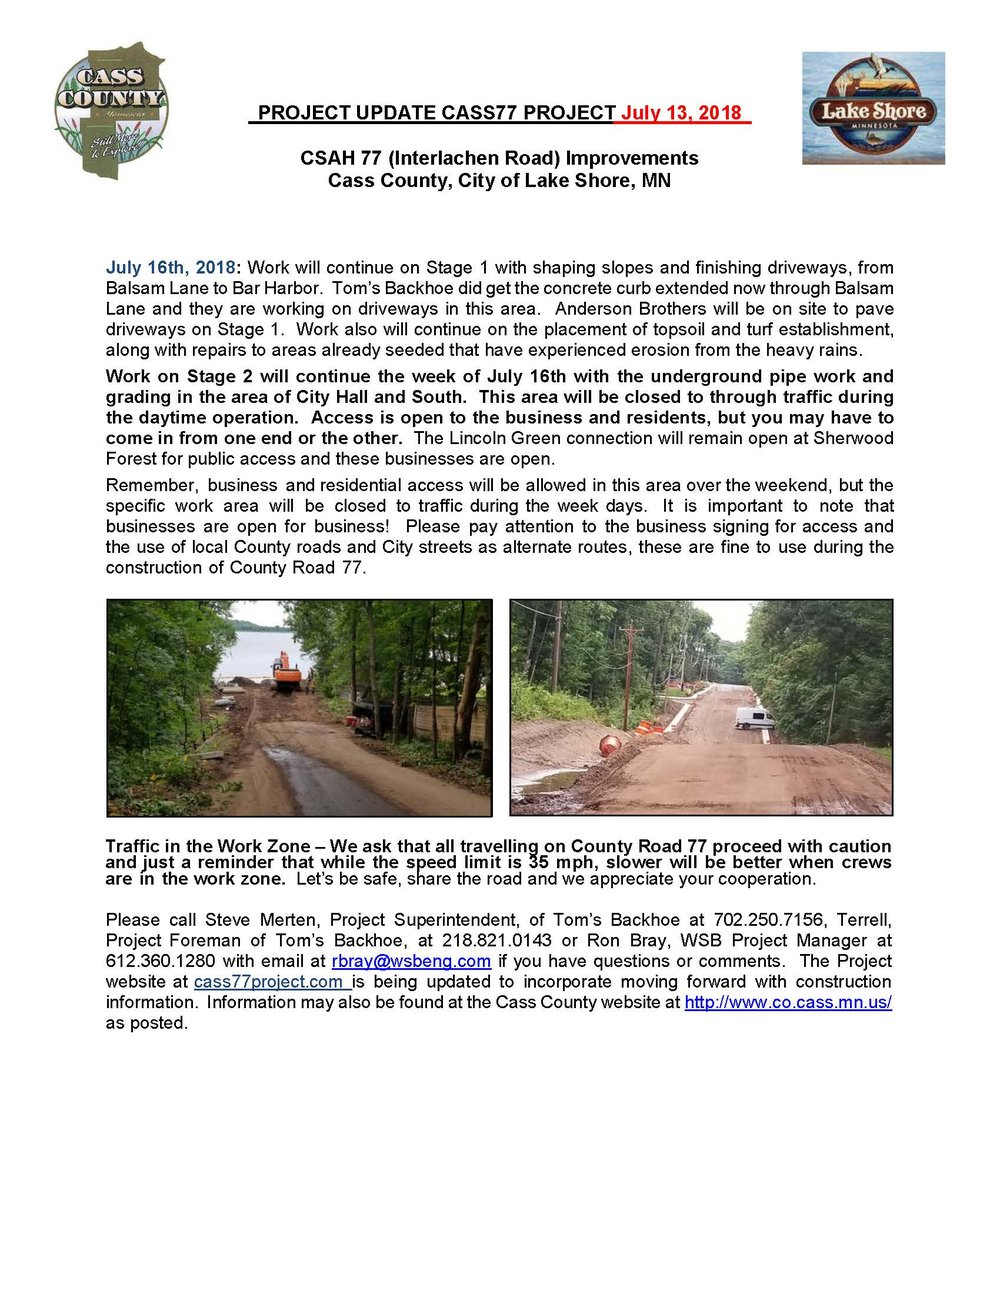 Cass County CSAH 77 Project update July 13 2018.jpg